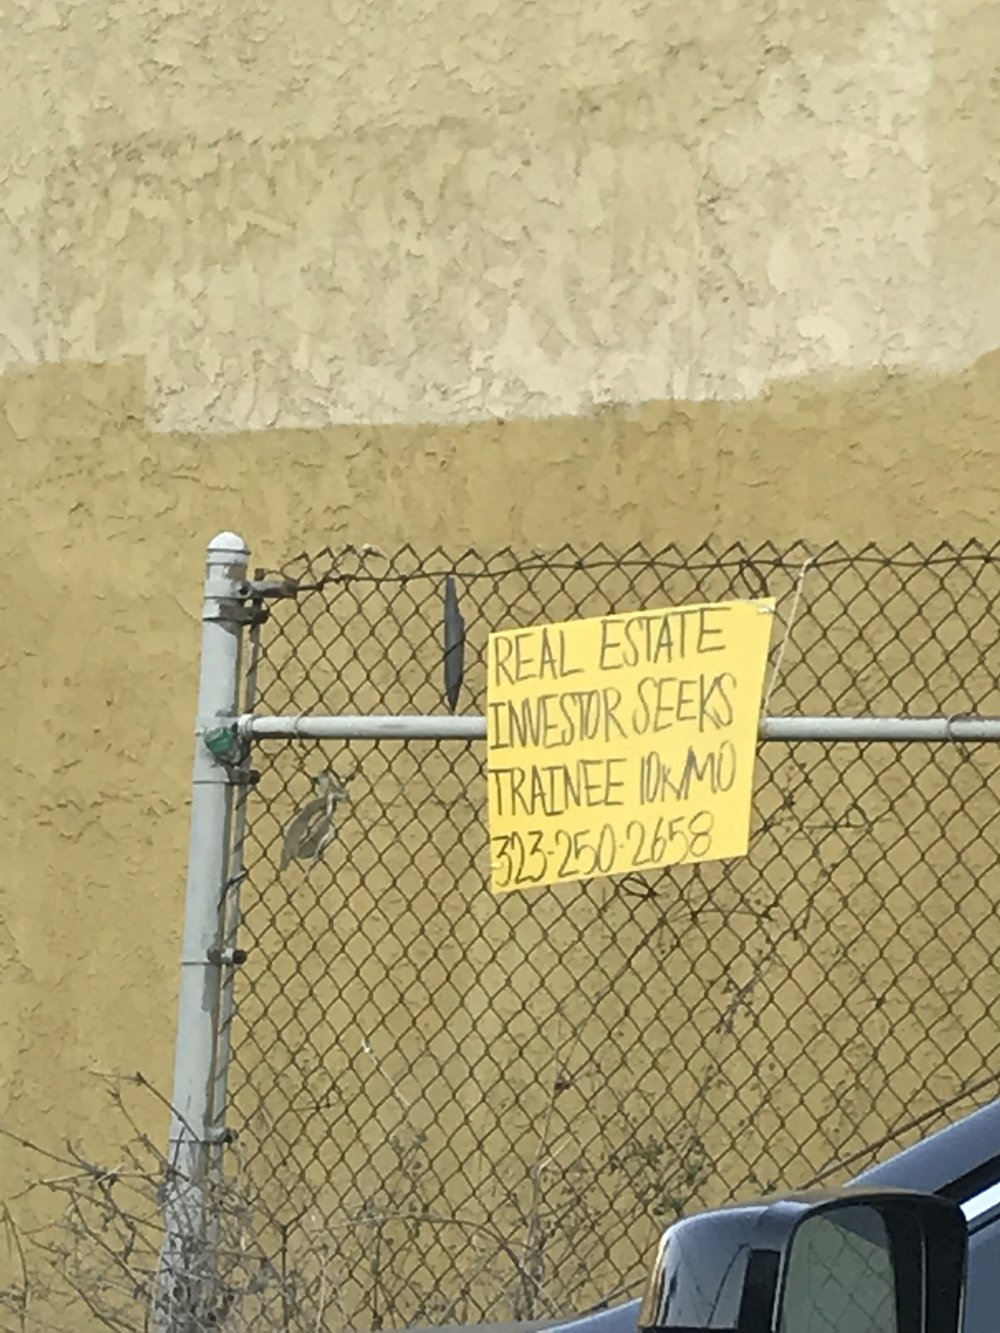 Saw this handwritten sign as I exited the 405. I've always been curious about these sort of posters and I was very tempted to call the number listed.